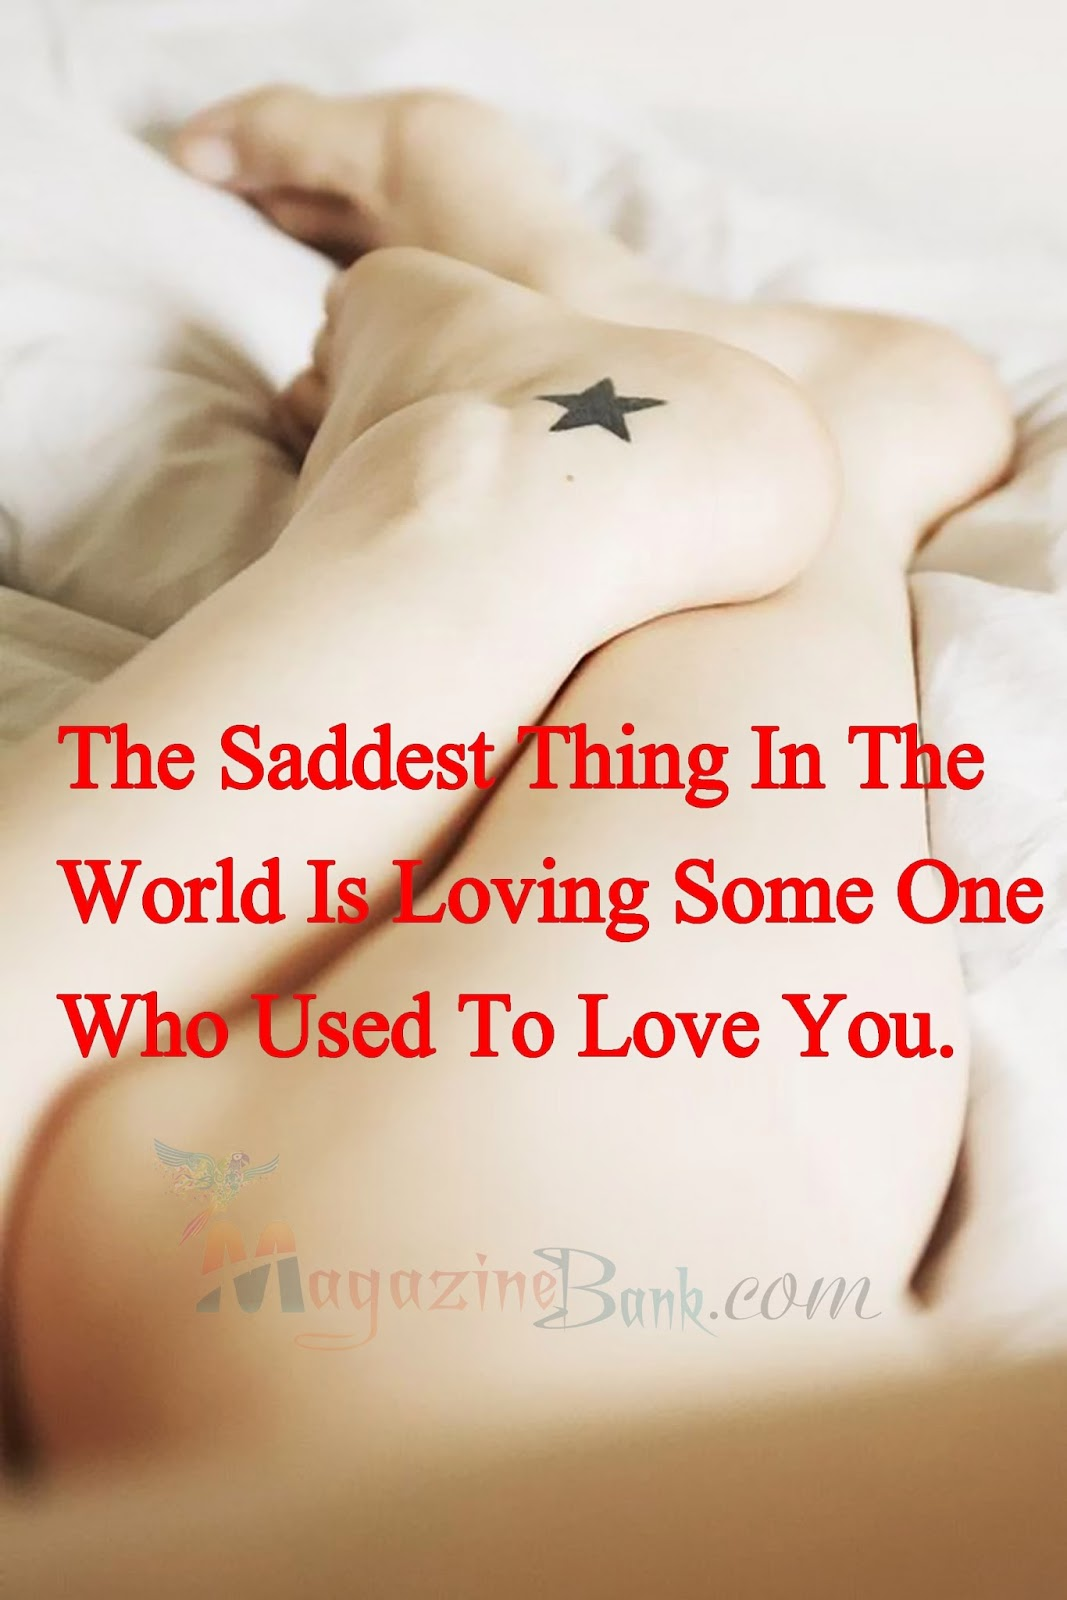 Sad Love Quotes For Her Images : English Sad Love Quotes. QuotesGram